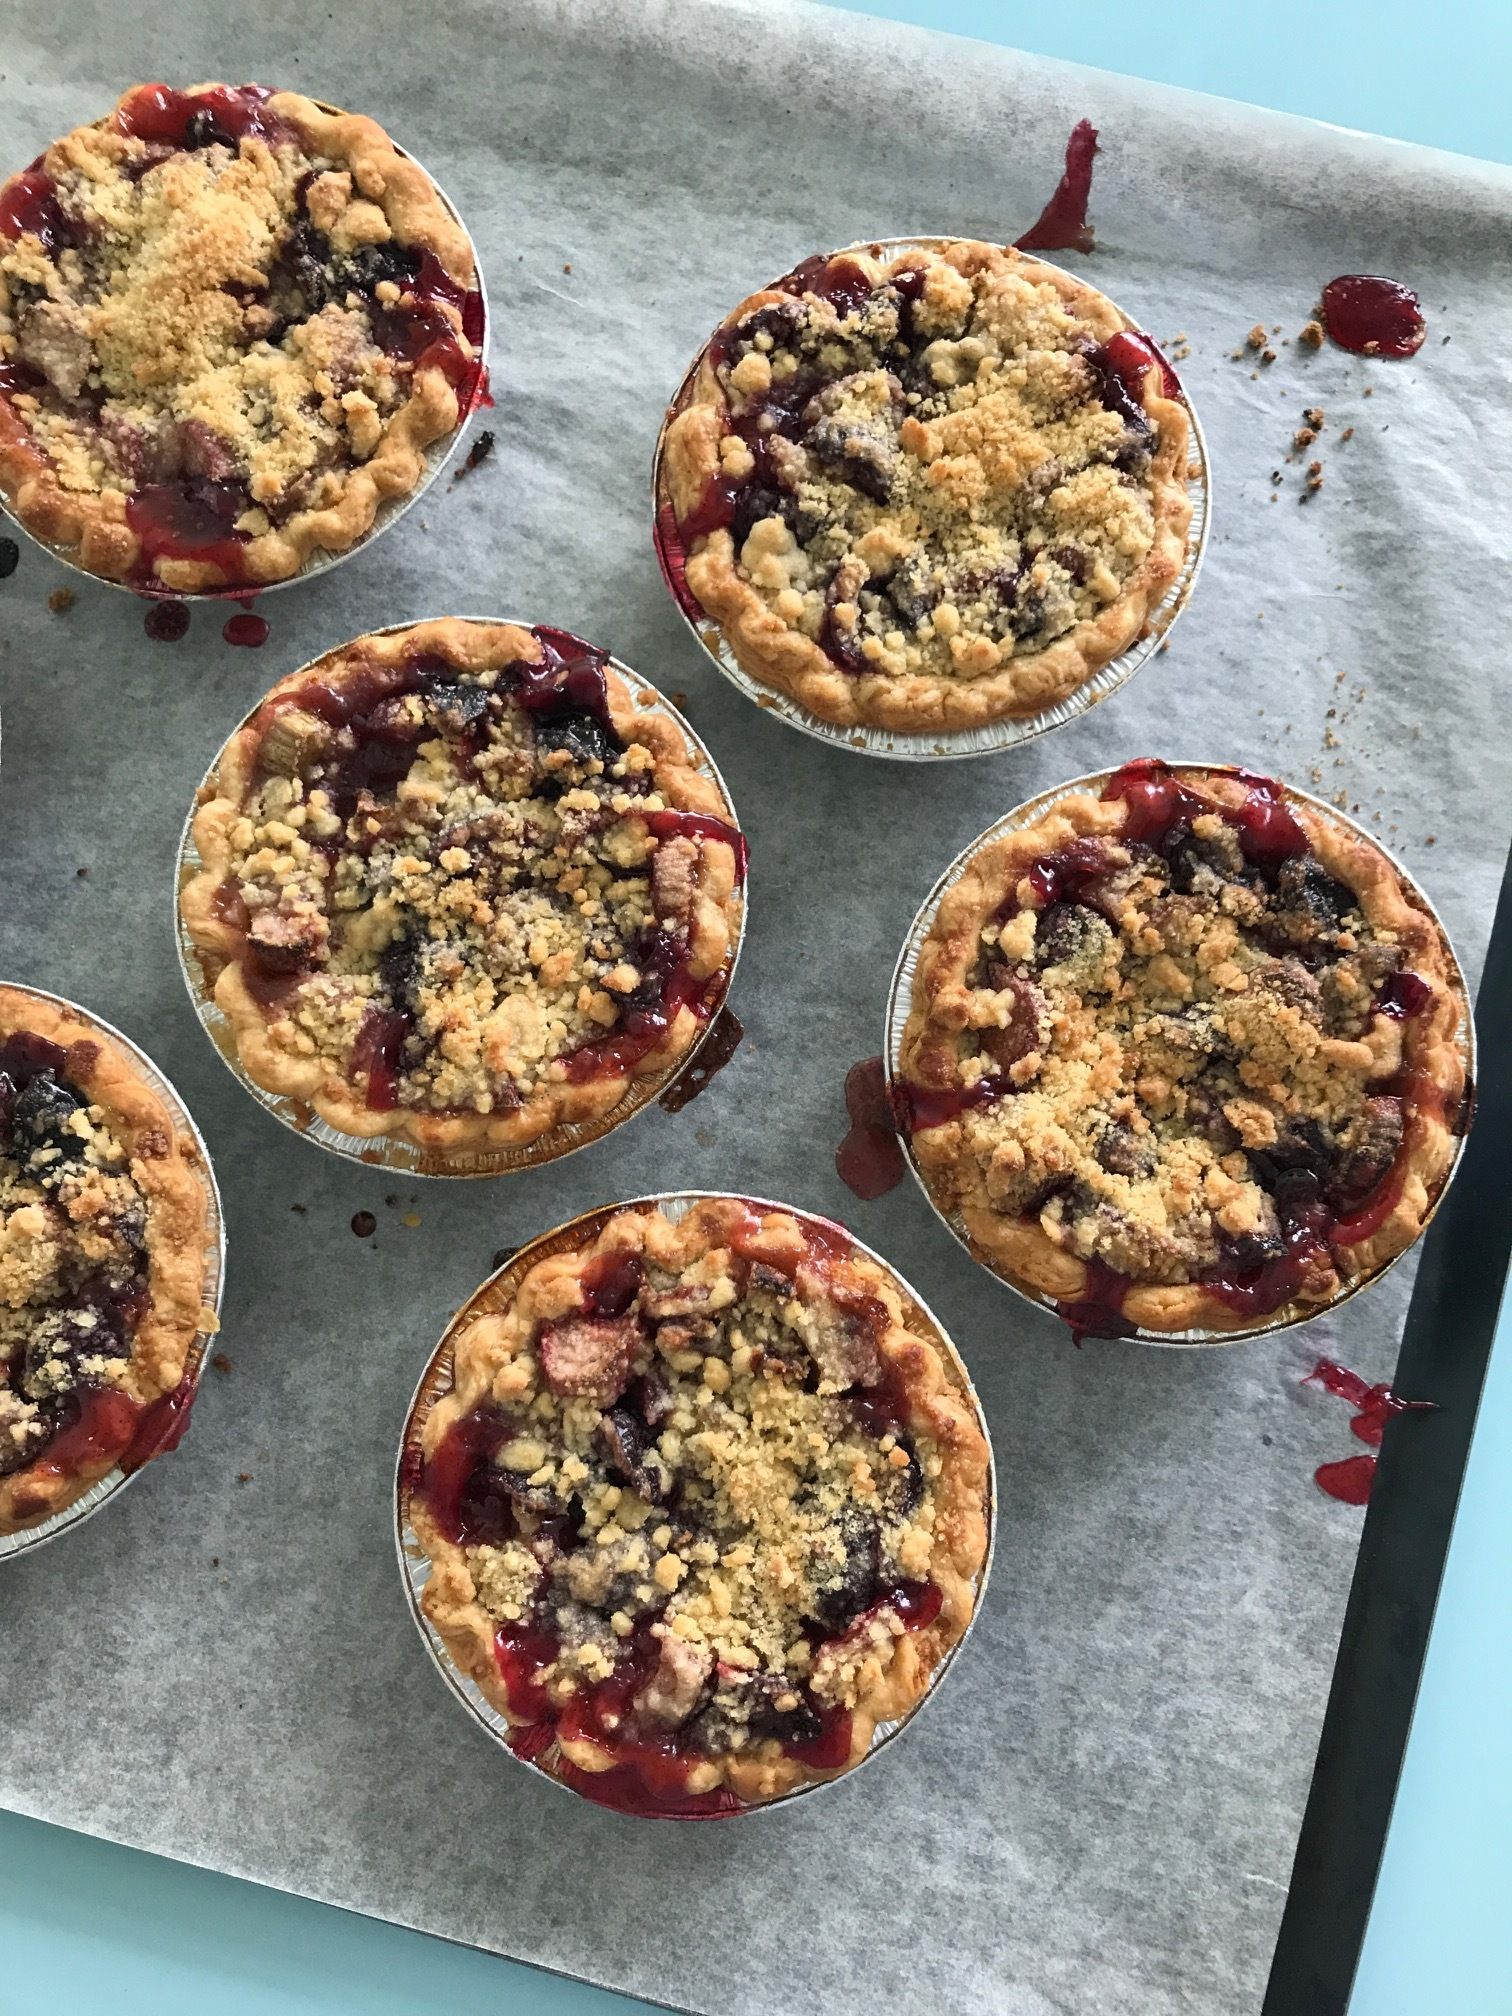 Dazzle your guests with individual fruit crumble pies!